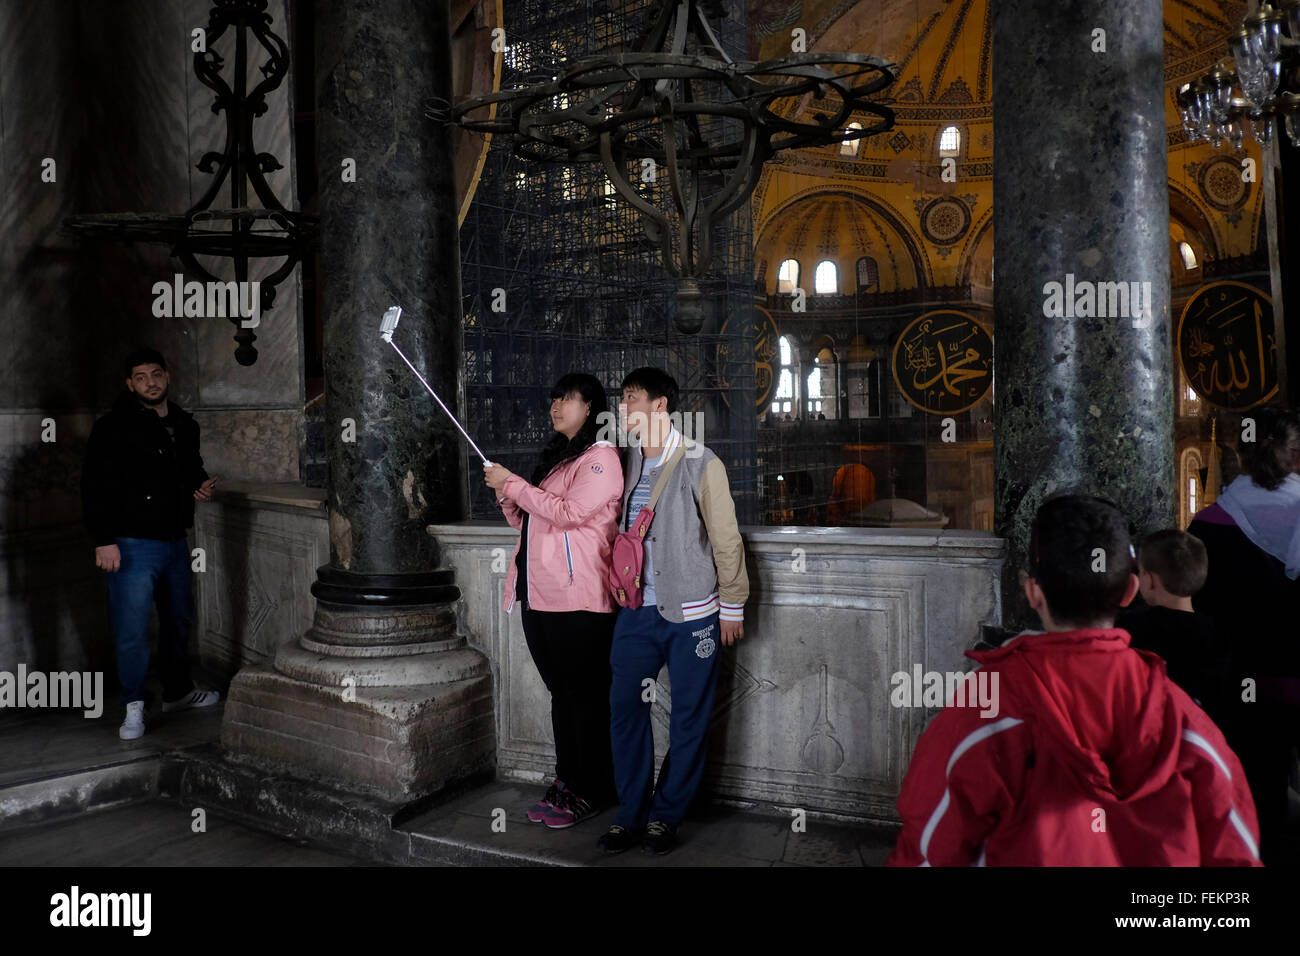 Tourists takes a selfie photo inside Hagia Sofia, in Istanbul on May 3, 2015. - Stock Image